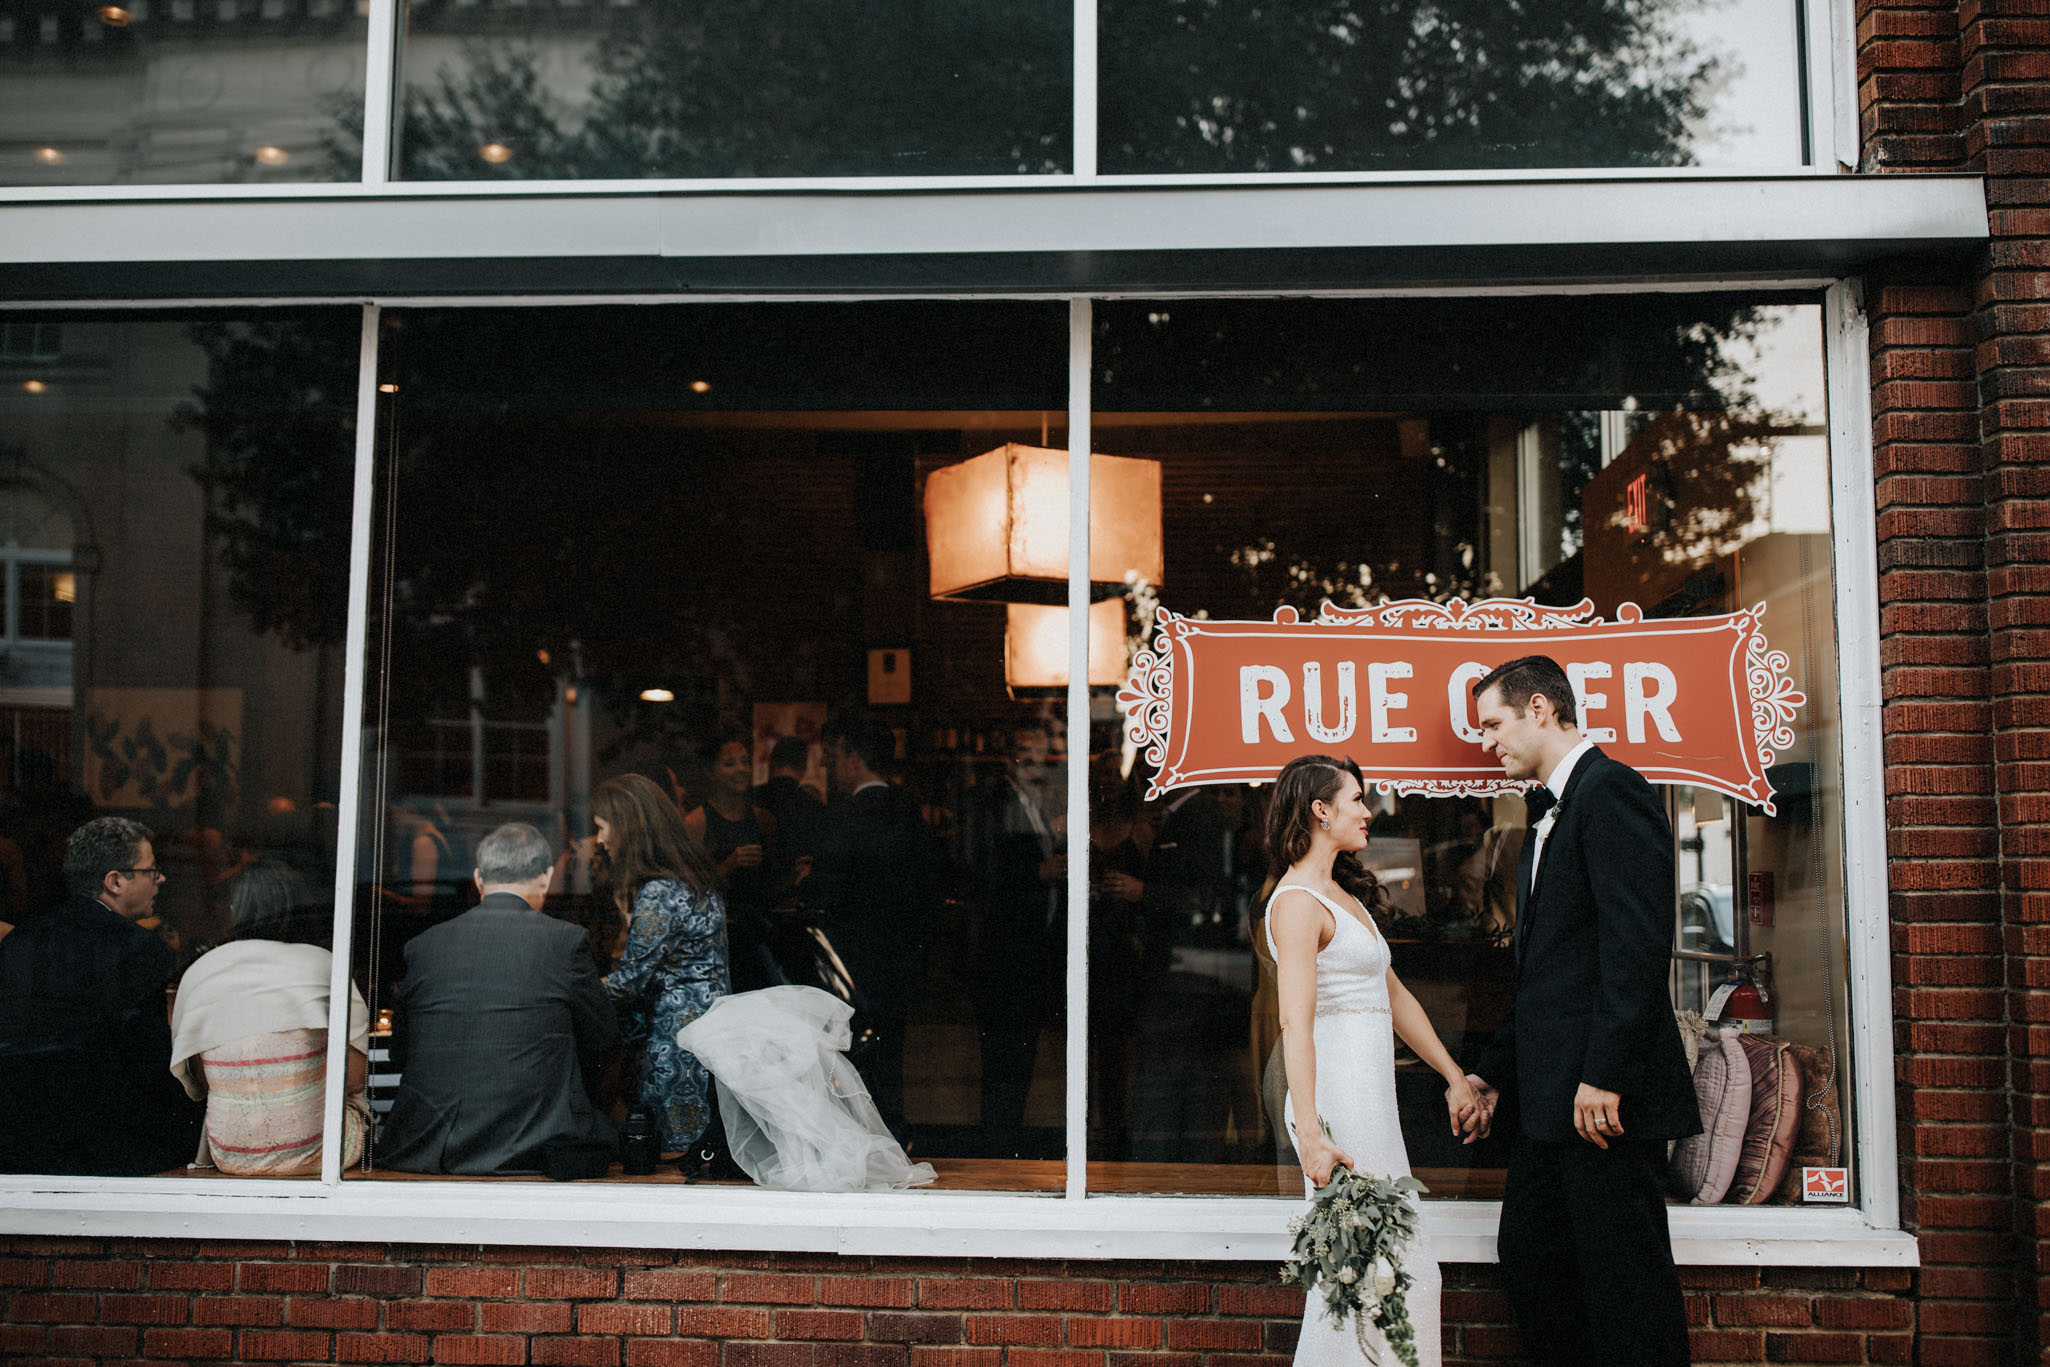 Rue Cler Durham NC event photography